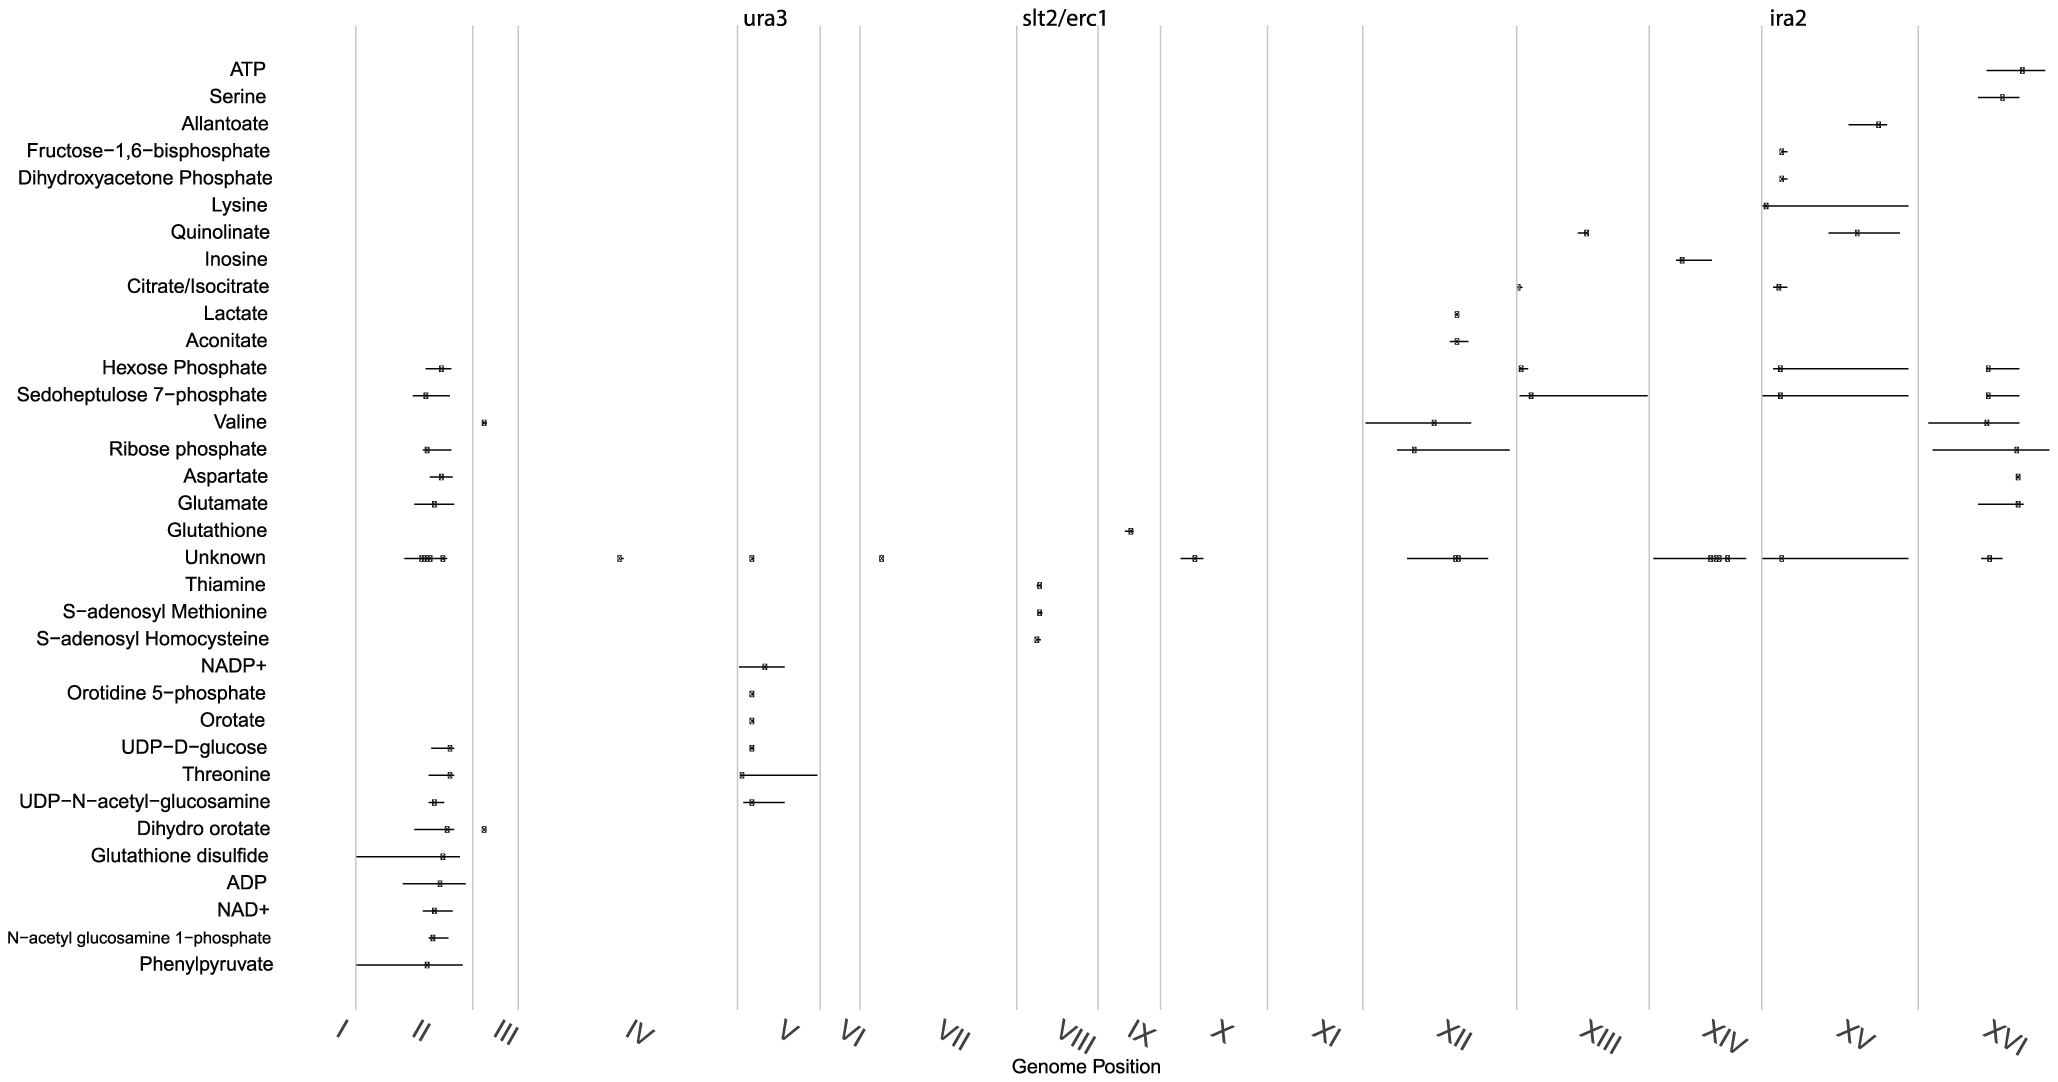 Distribution of significant linkages across the genome.